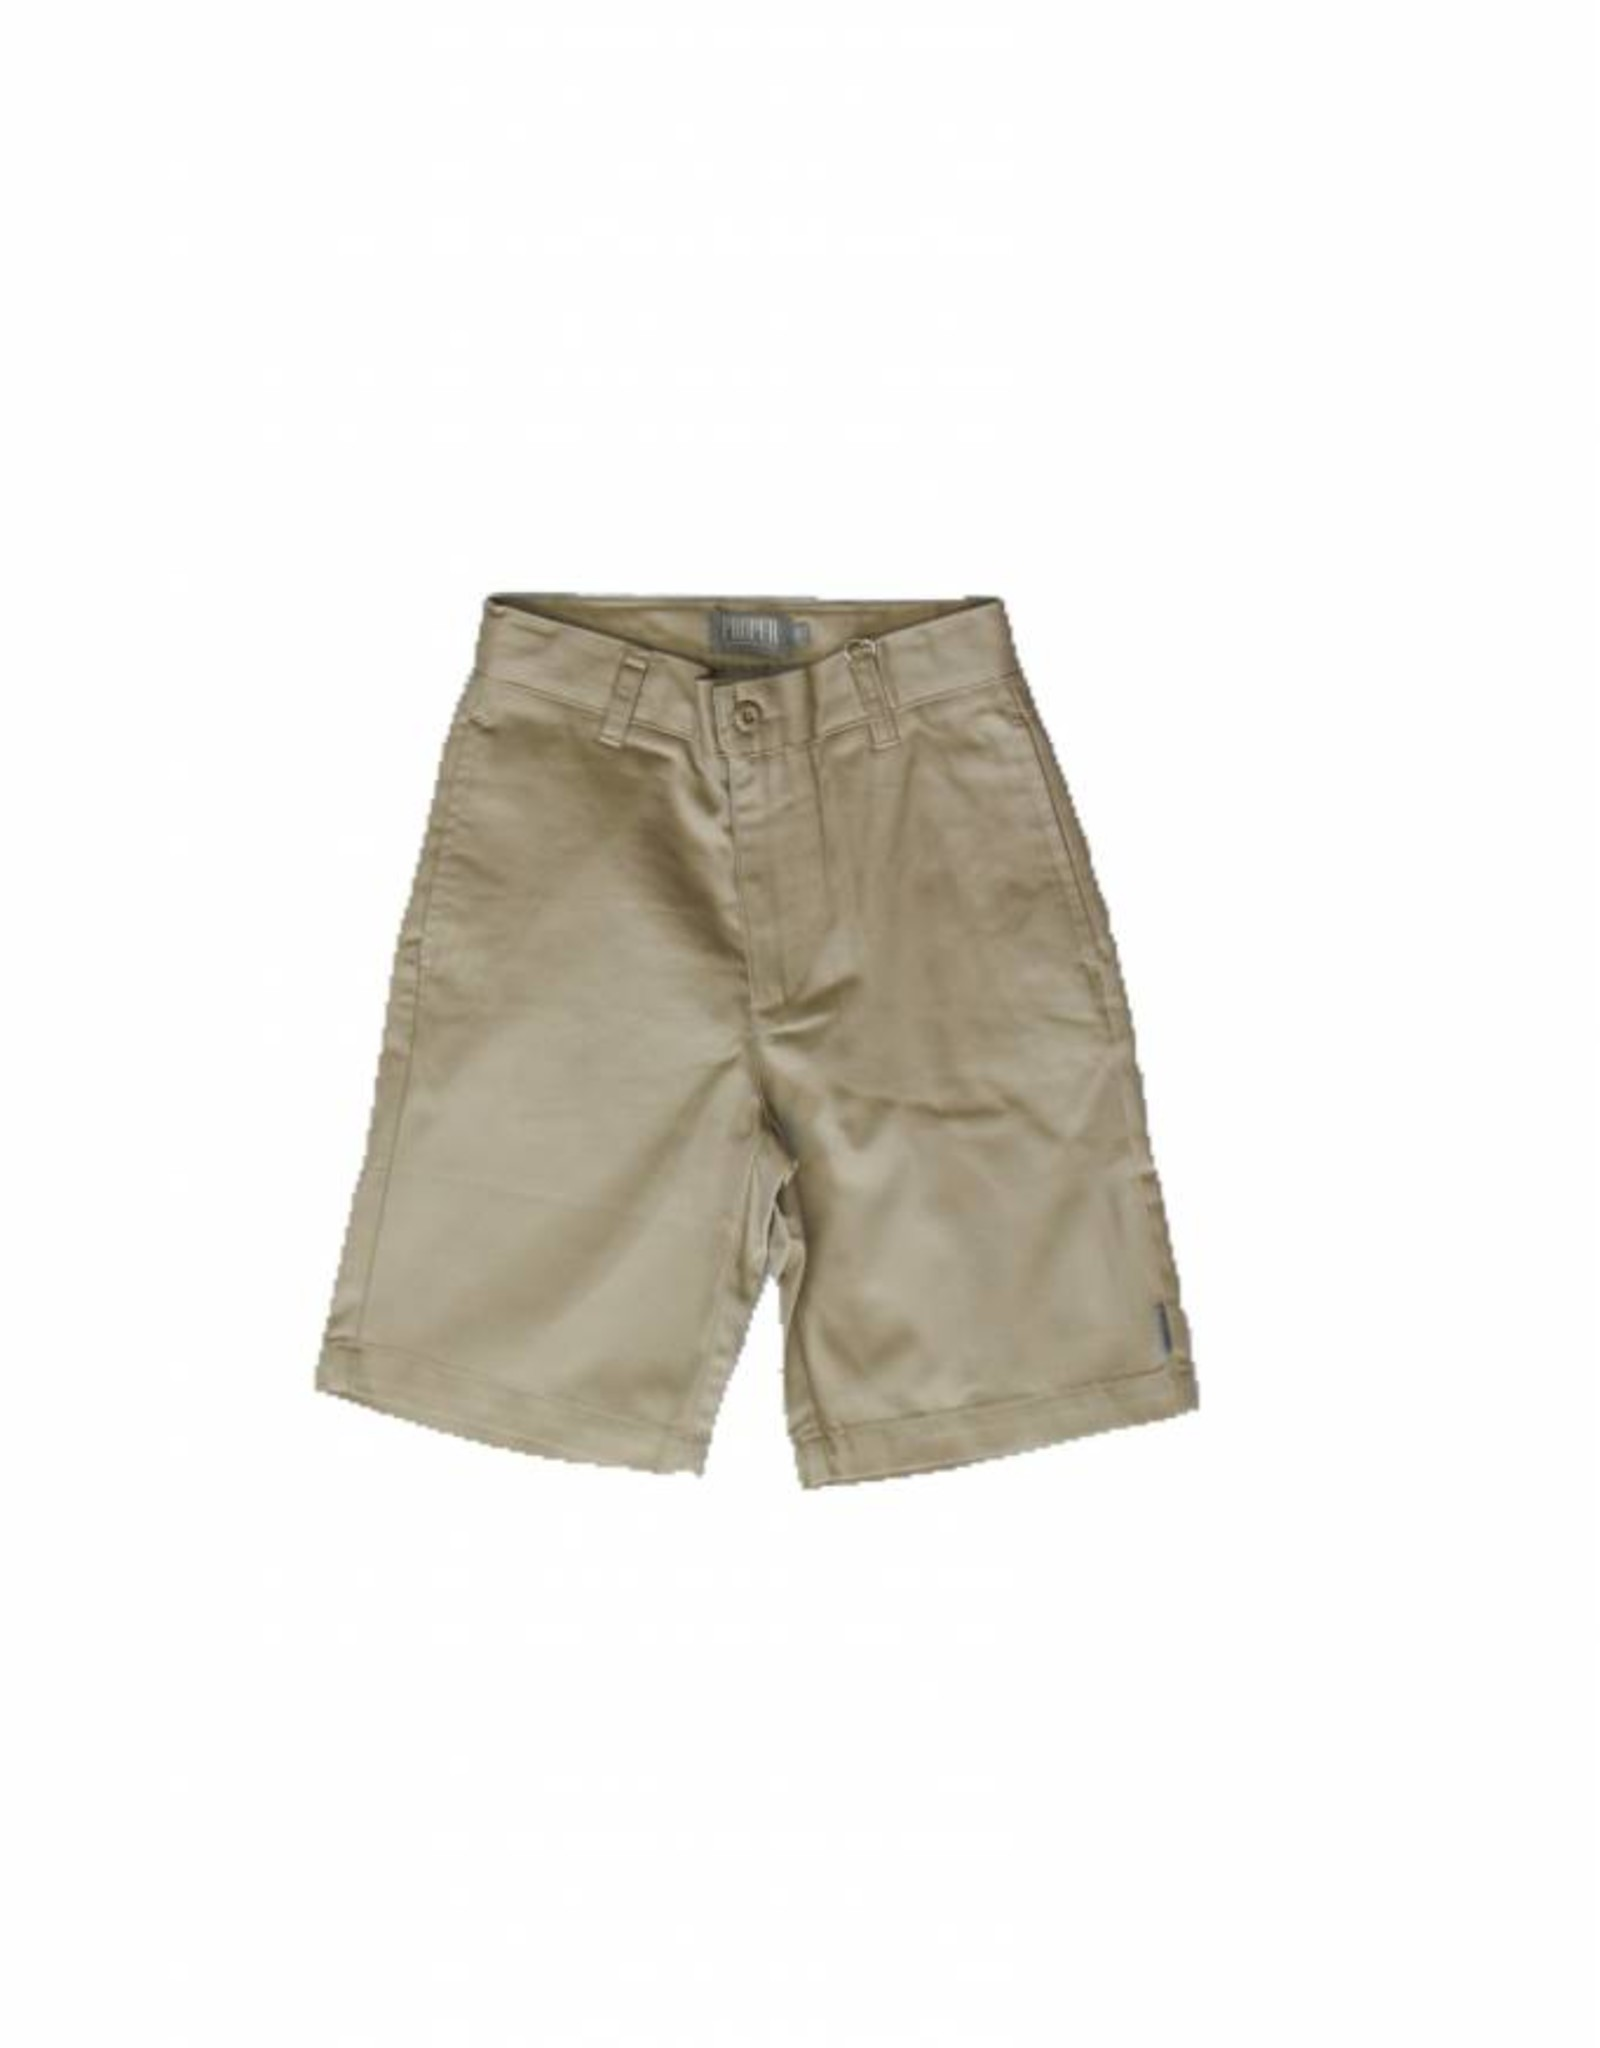 Proper Uniforms SHORTS-Youth Flat Front